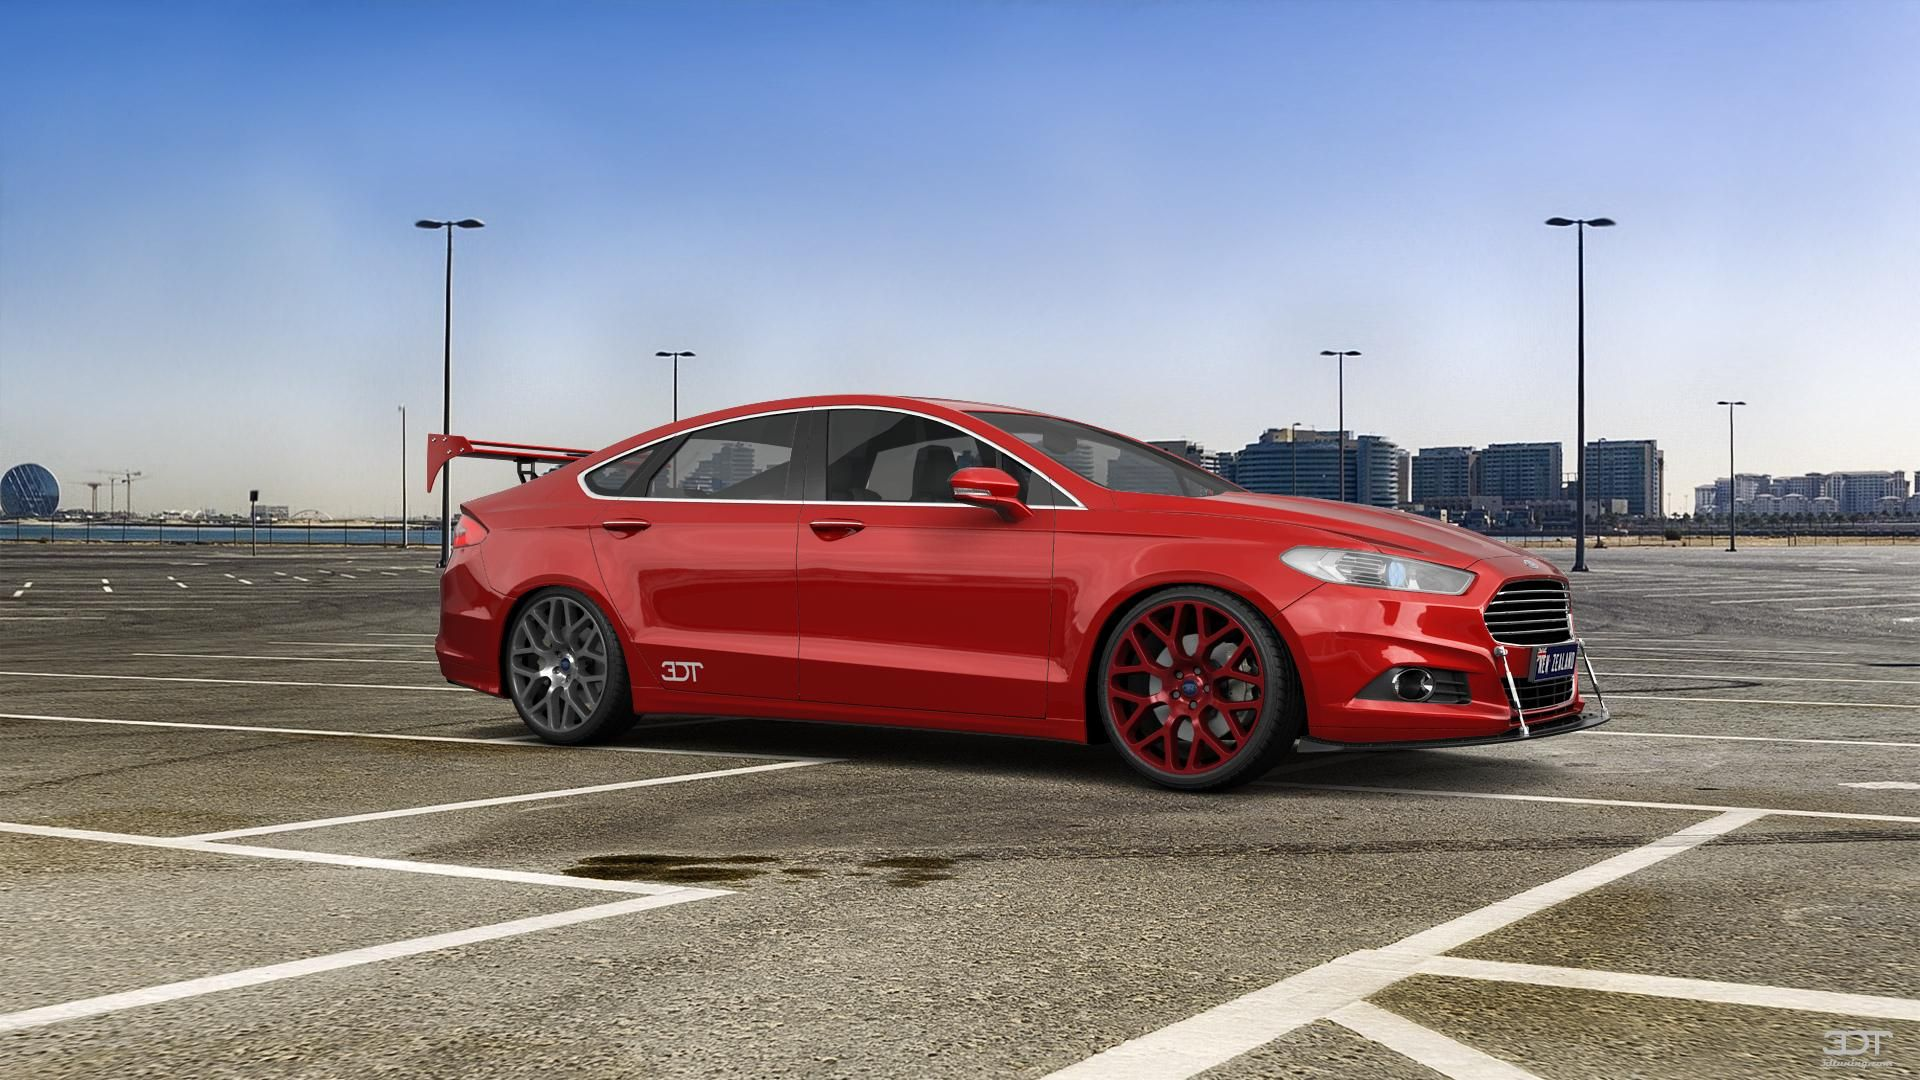 Checkout my tuning Ford Mondeo 2015 at 3DTuning